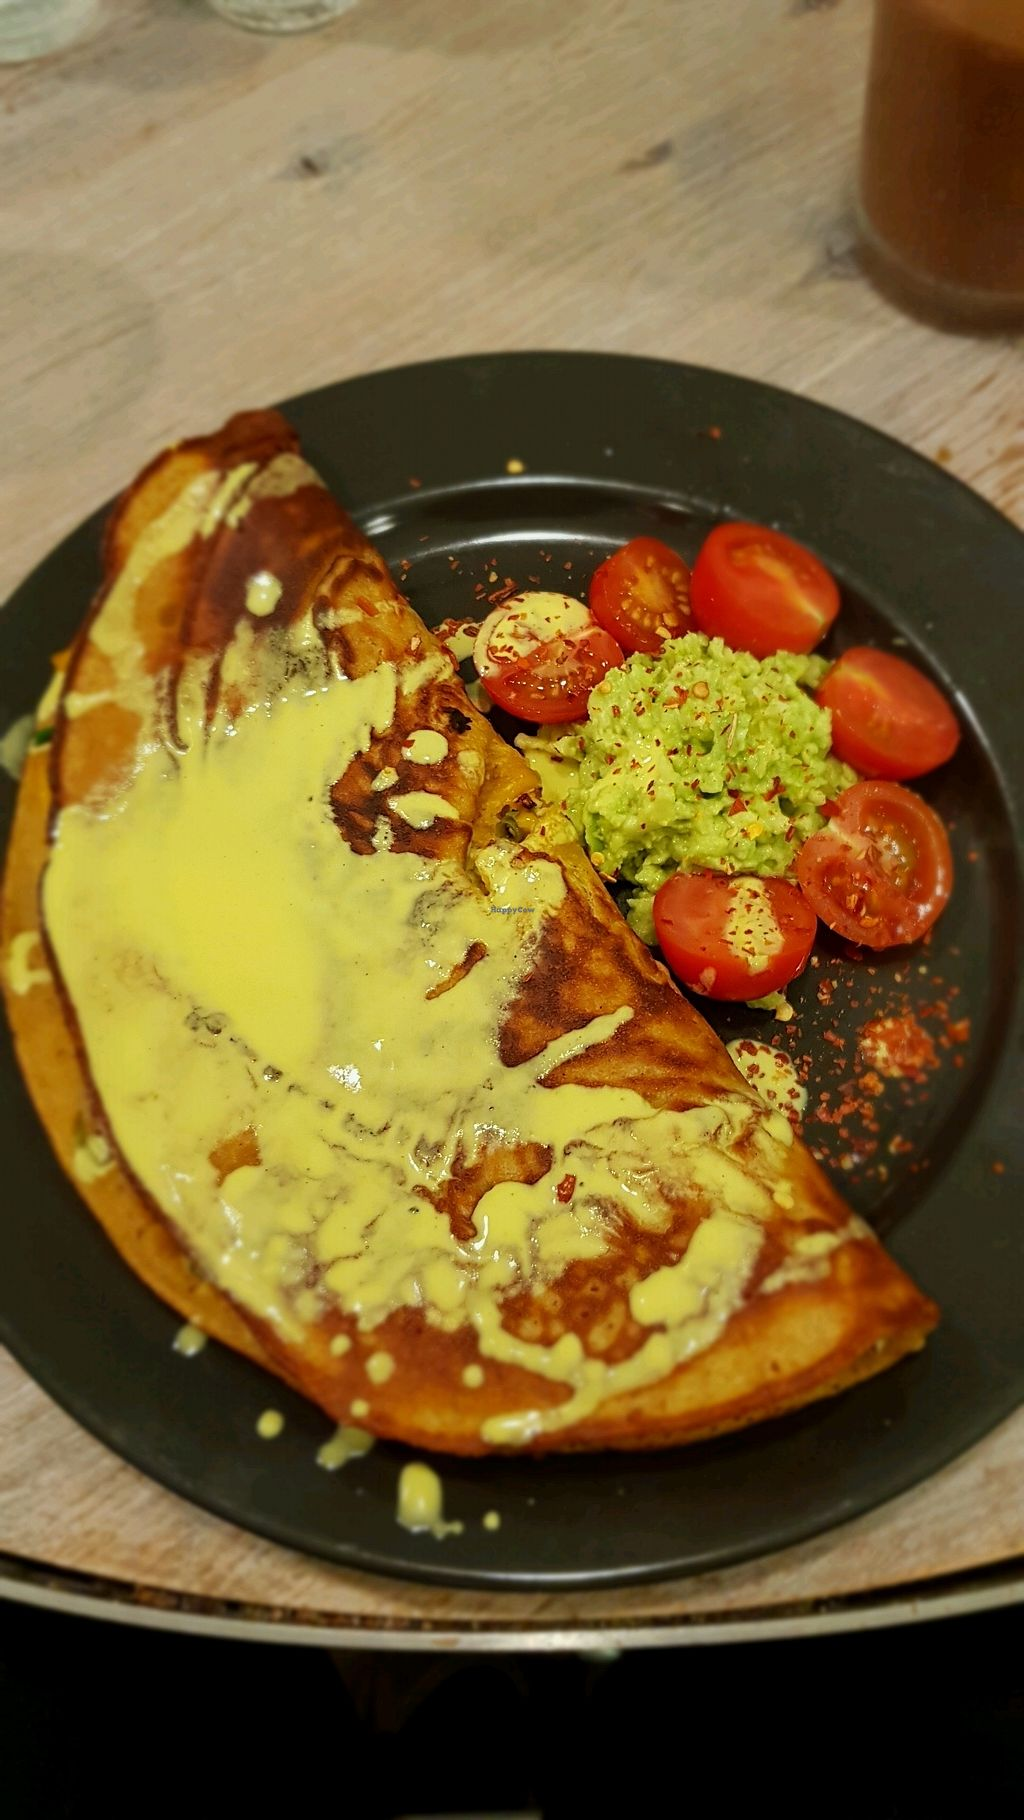 """Photo of Paradise Unbakery  by <a href=""""/members/profile/CarlocoIsVegan"""">CarlocoIsVegan</a> <br/>Chickpea omelette  <br/> January 11, 2018  - <a href='/contact/abuse/image/78199/345480'>Report</a>"""